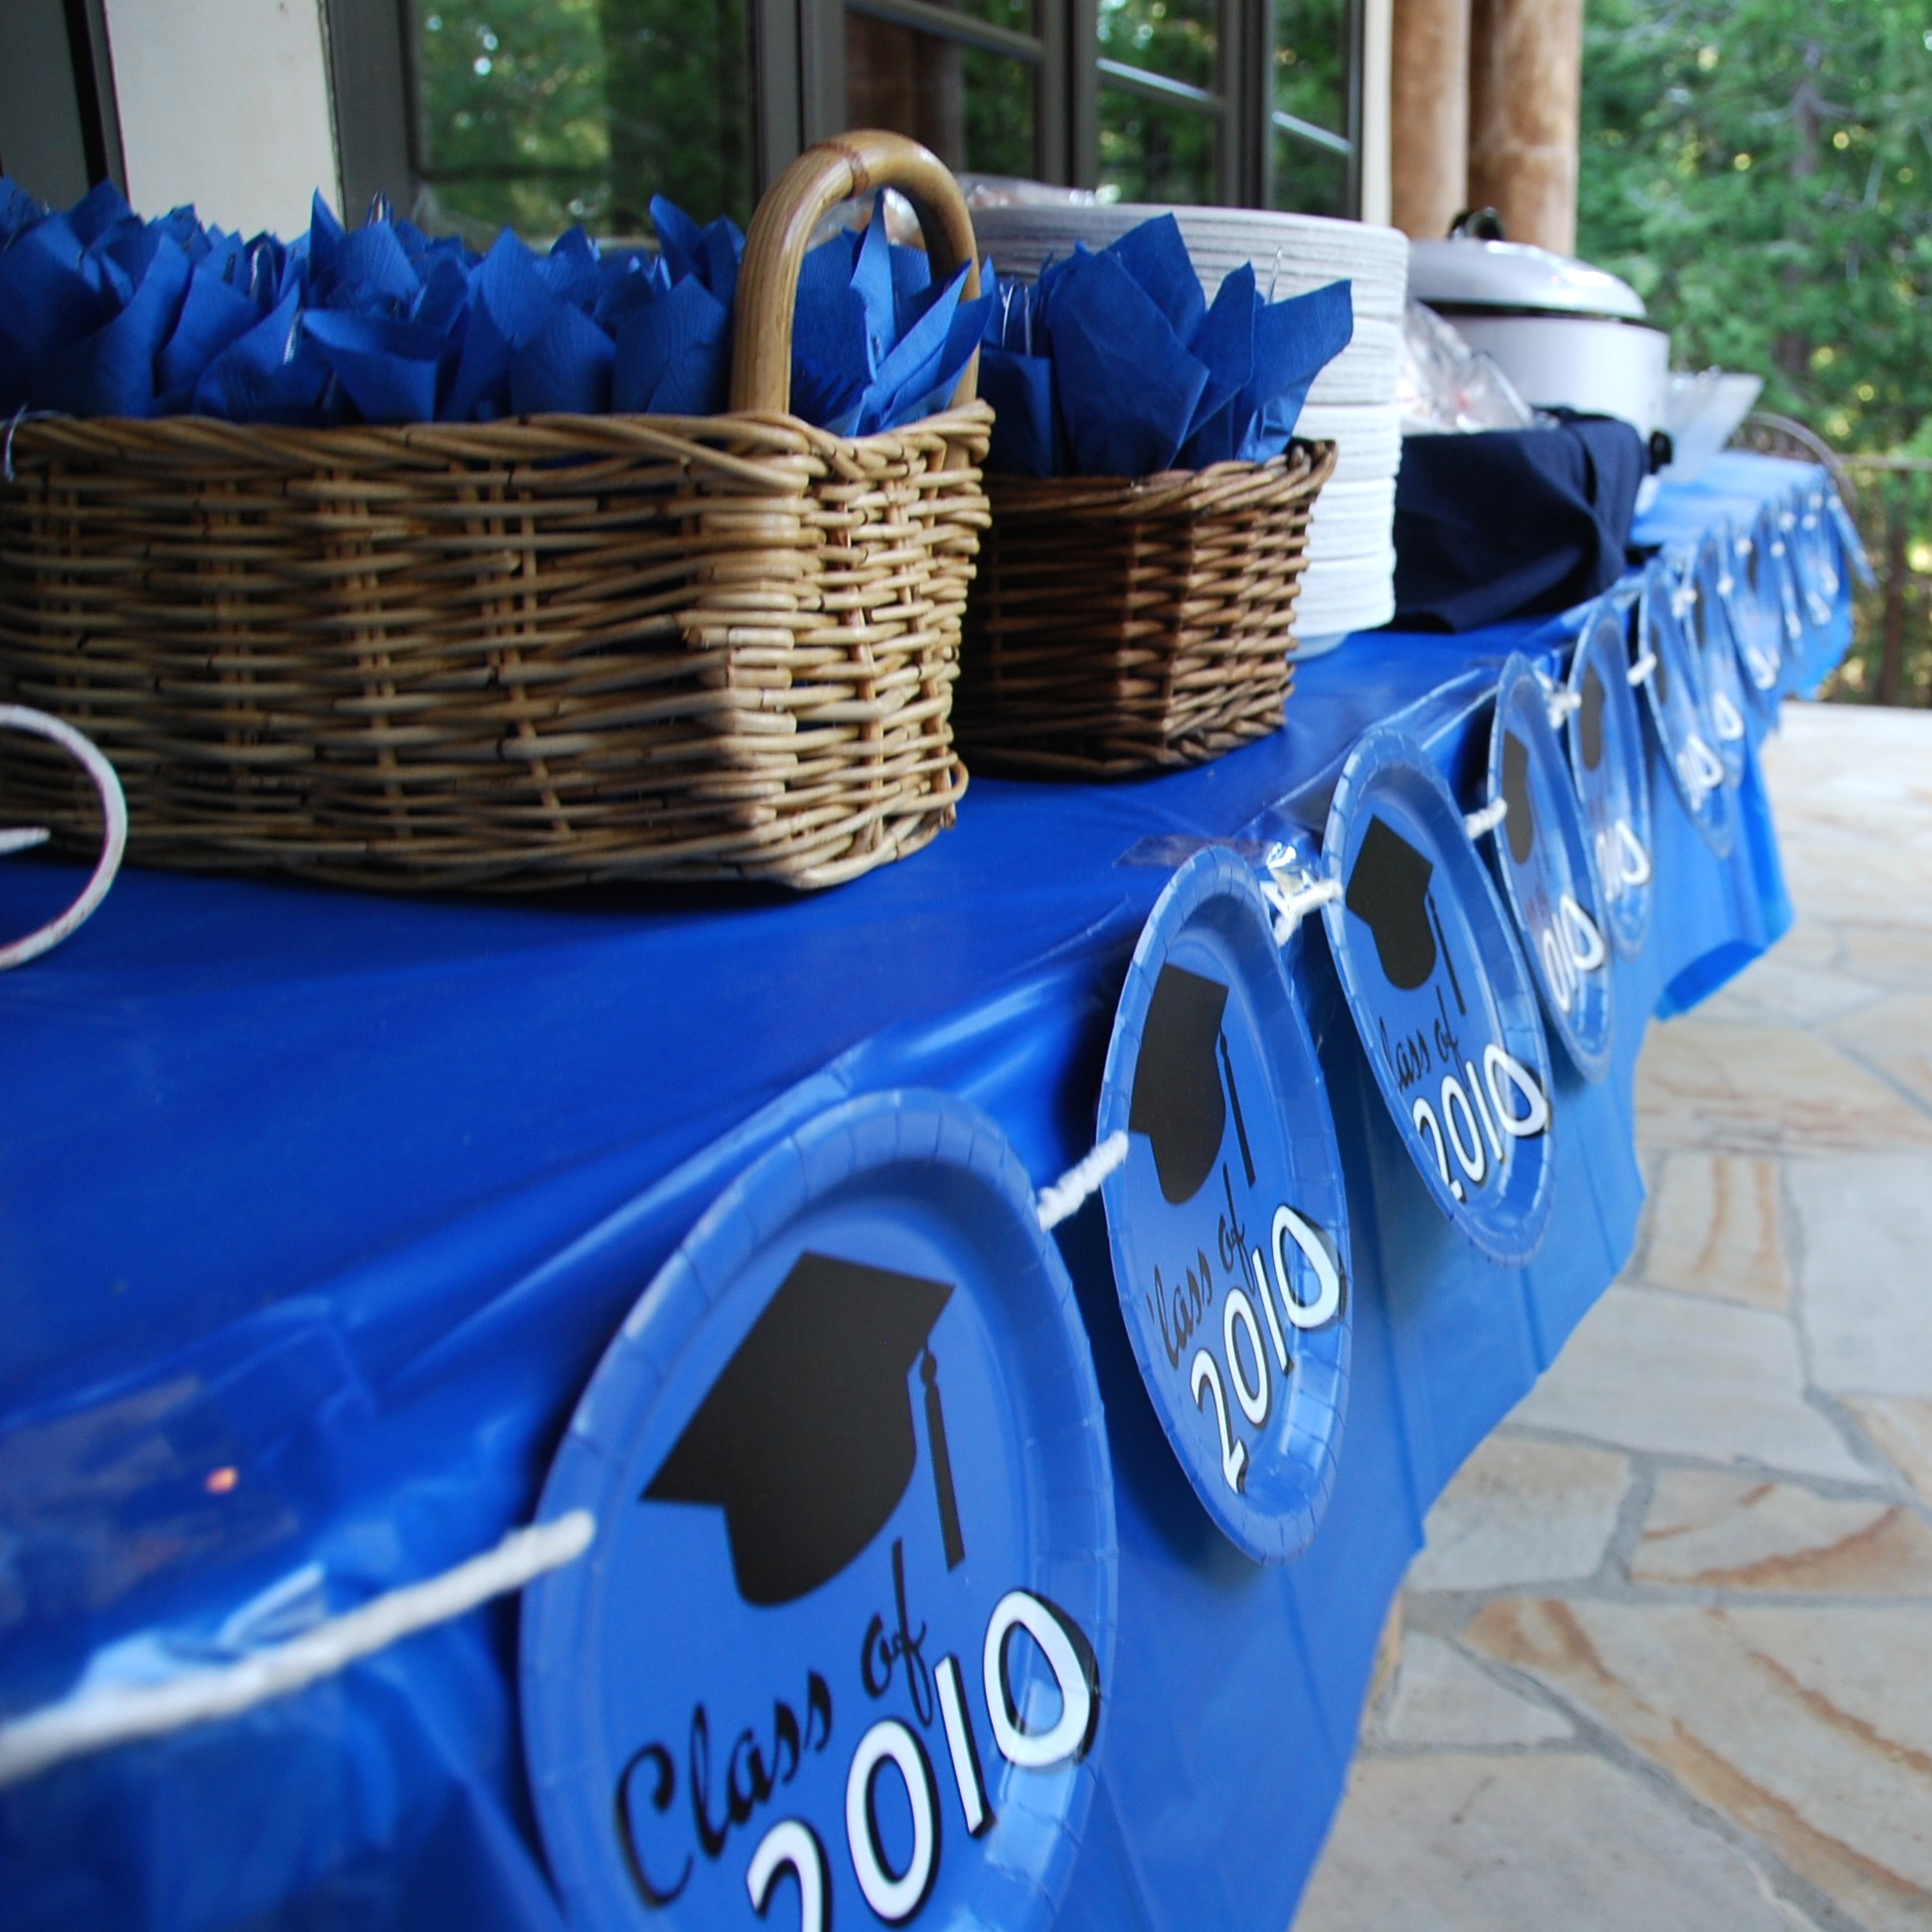 Graduation Party Ideas: HOW TO THROW A GREAT GRADUATION PARTY